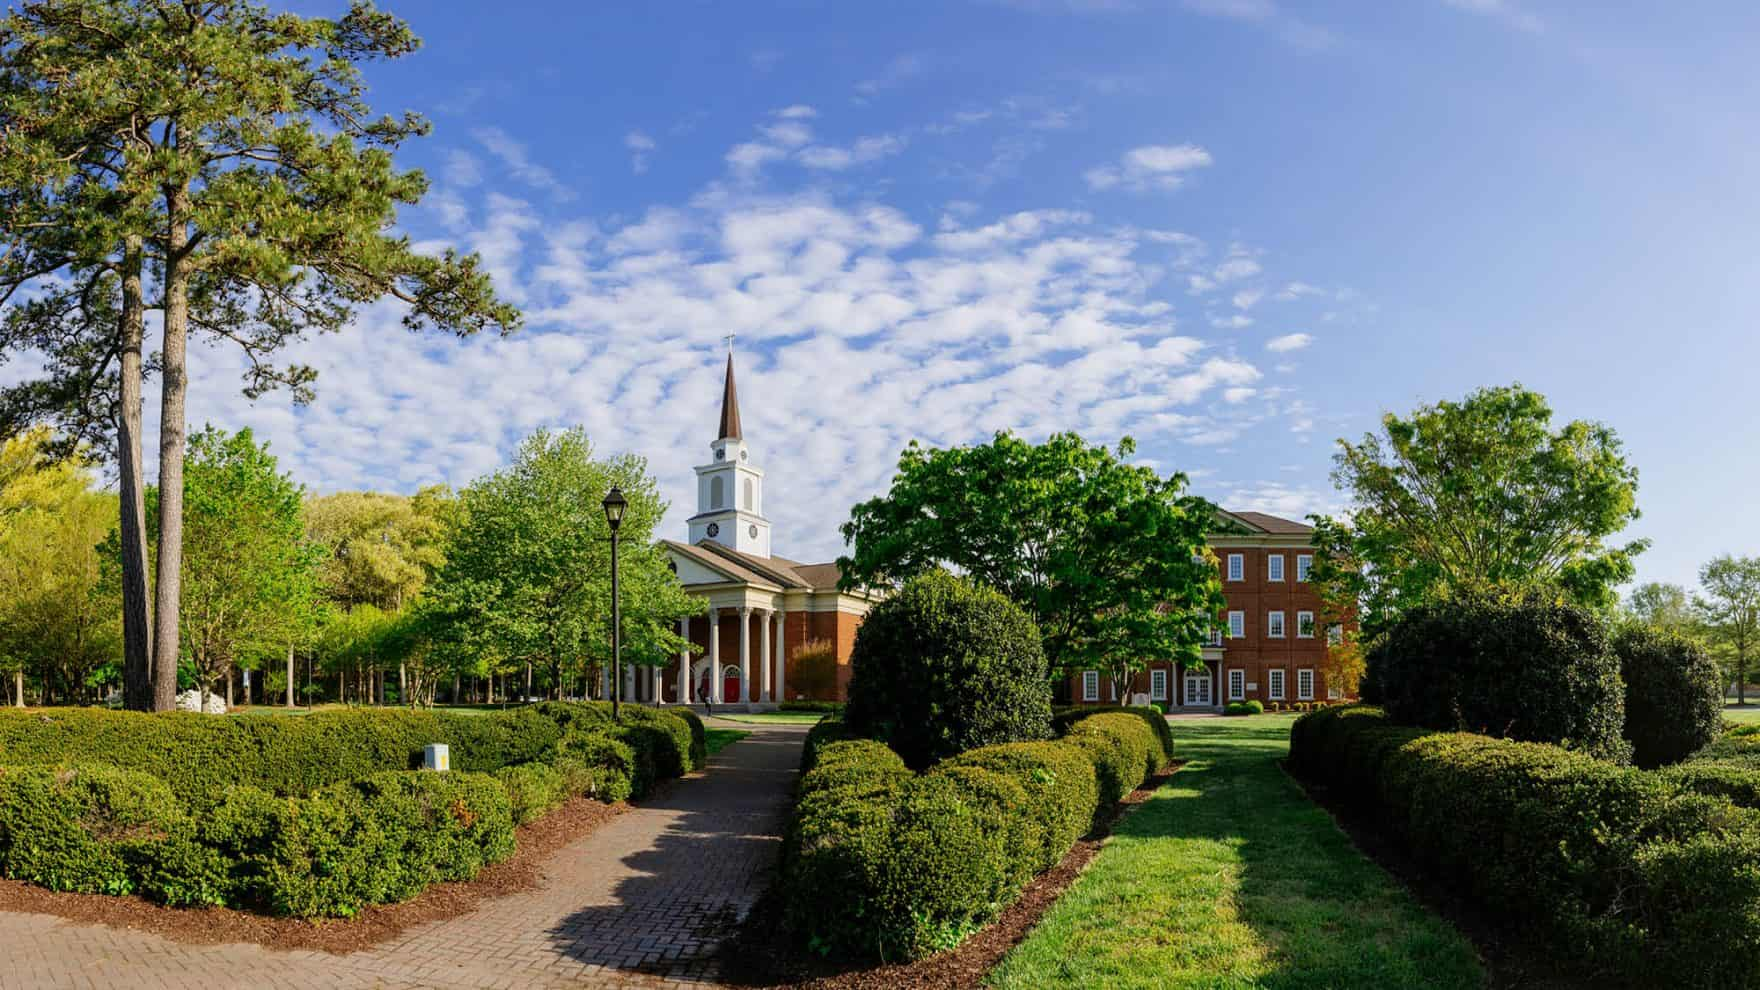 The chapel and Divinity Building of Regent University, a Christian college in Virginia.